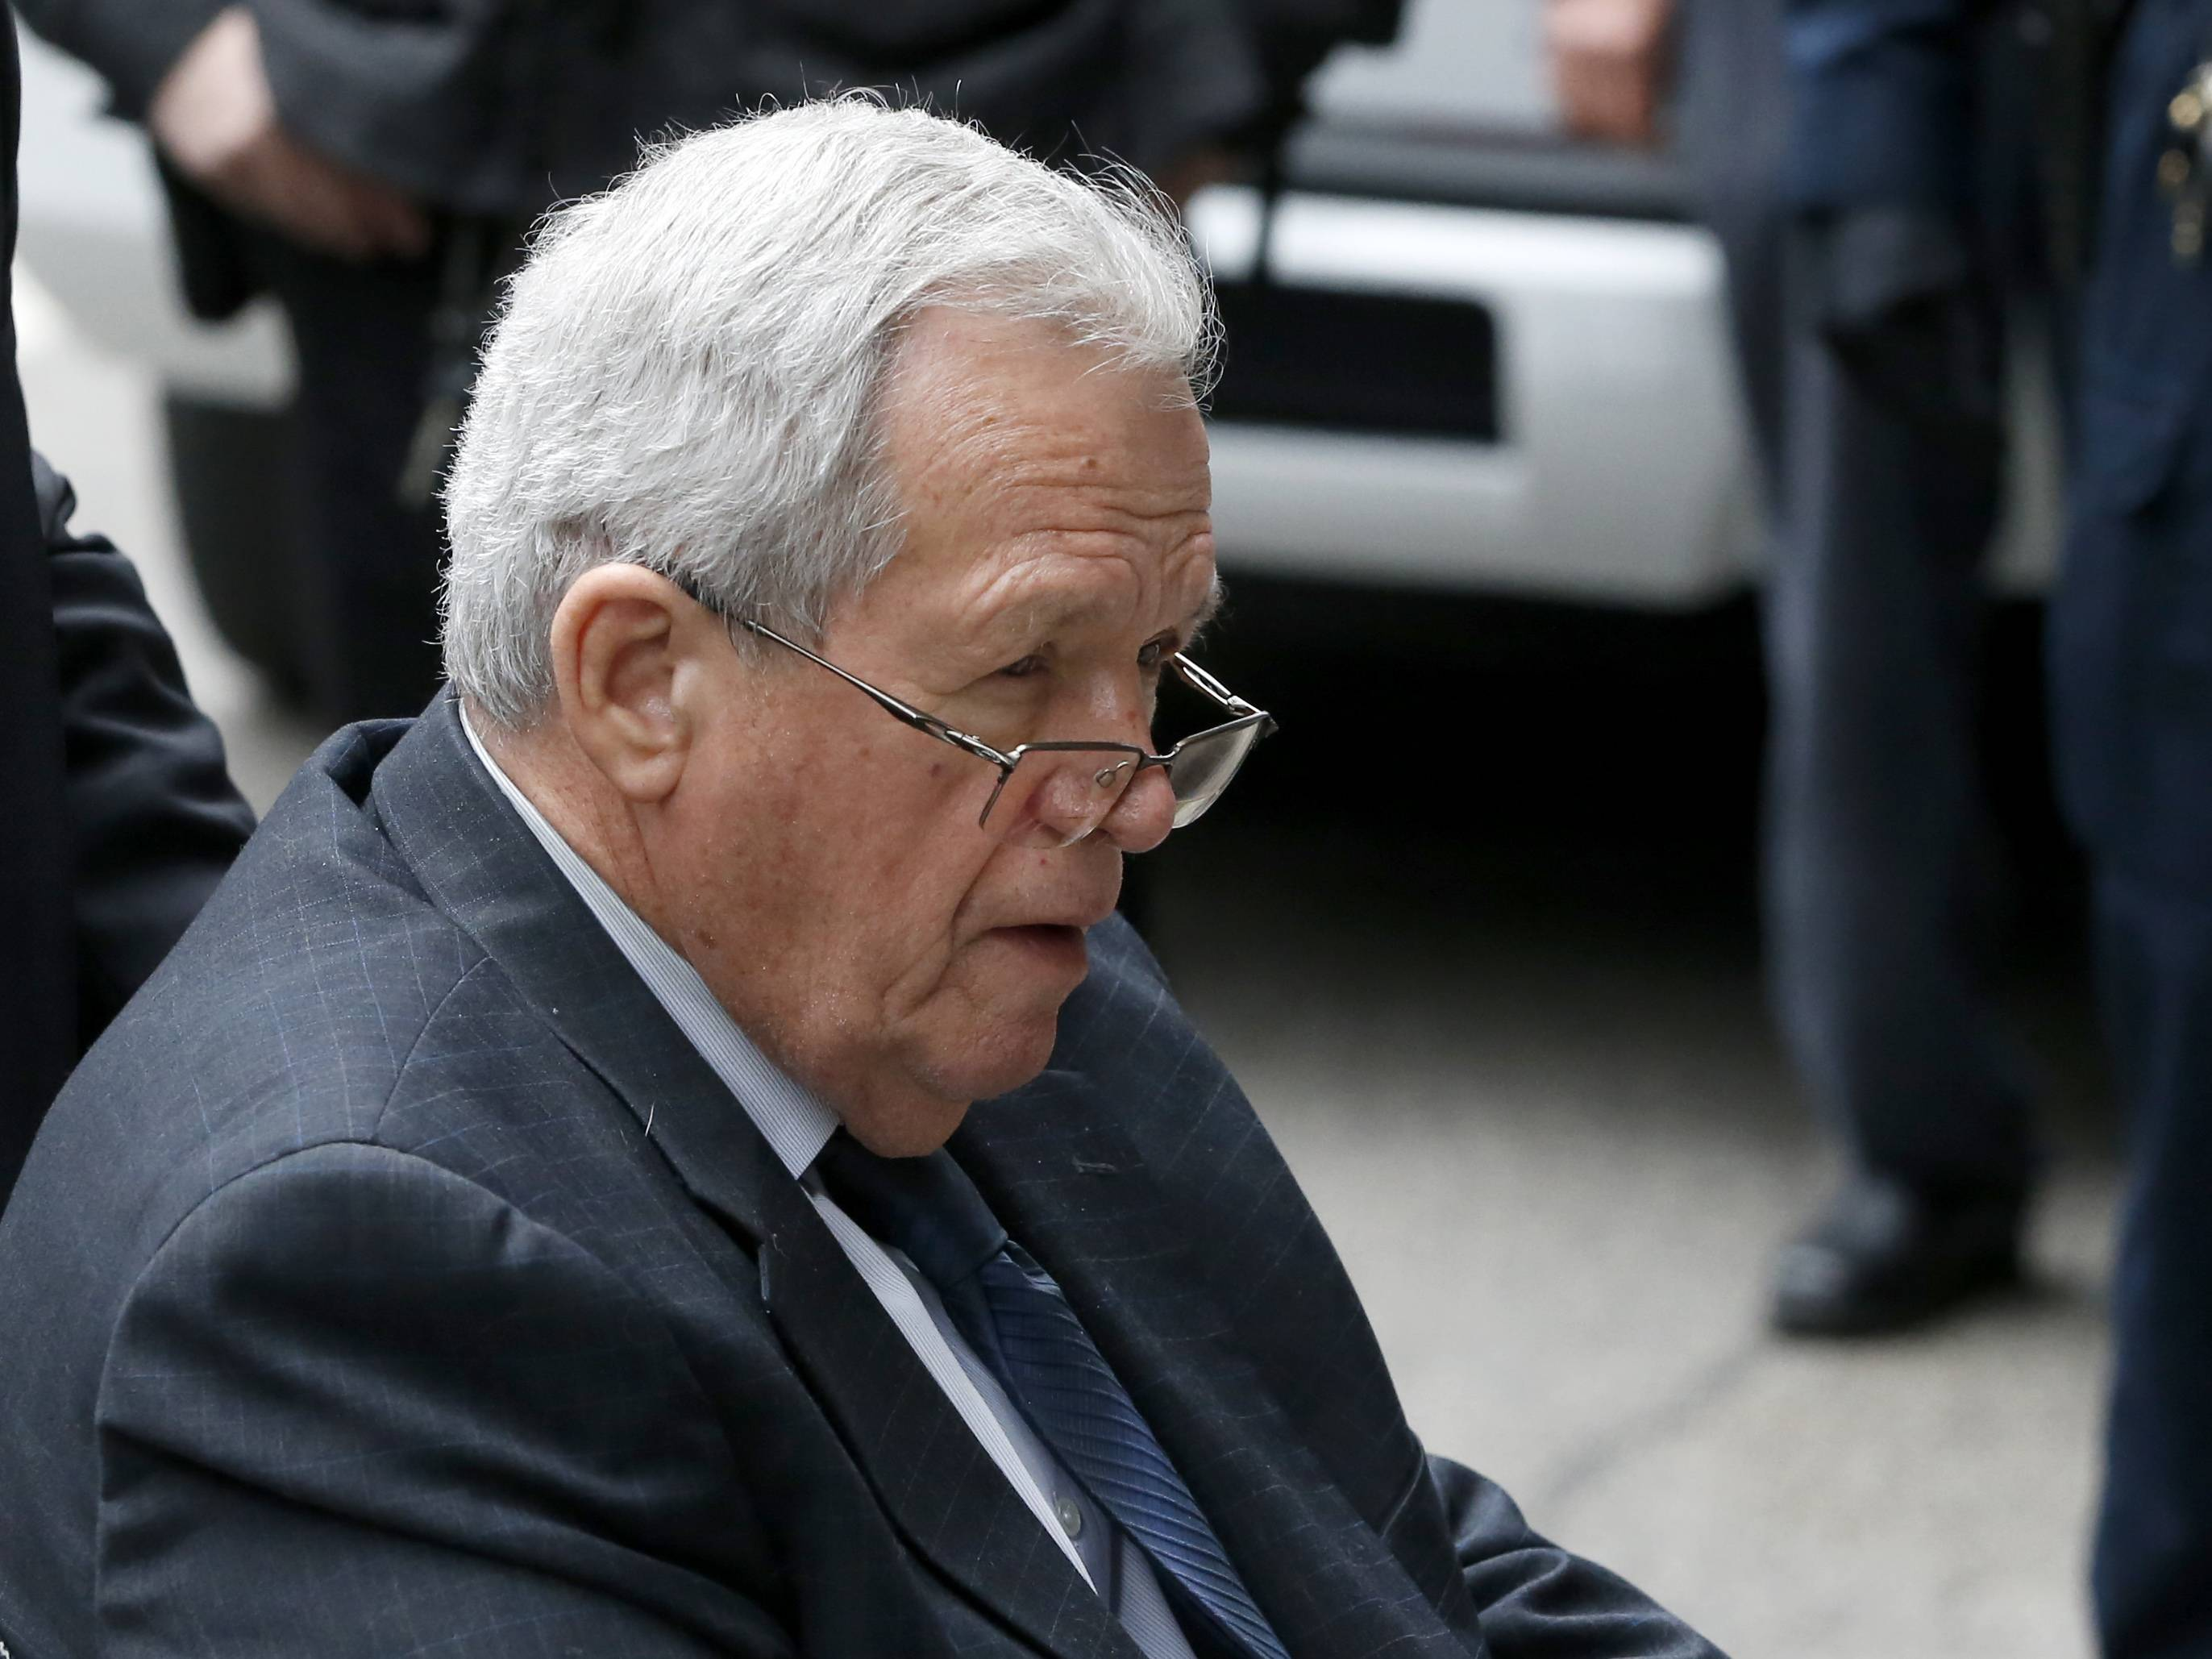 Judge says Hastert victim can proceed with suit for more hush money